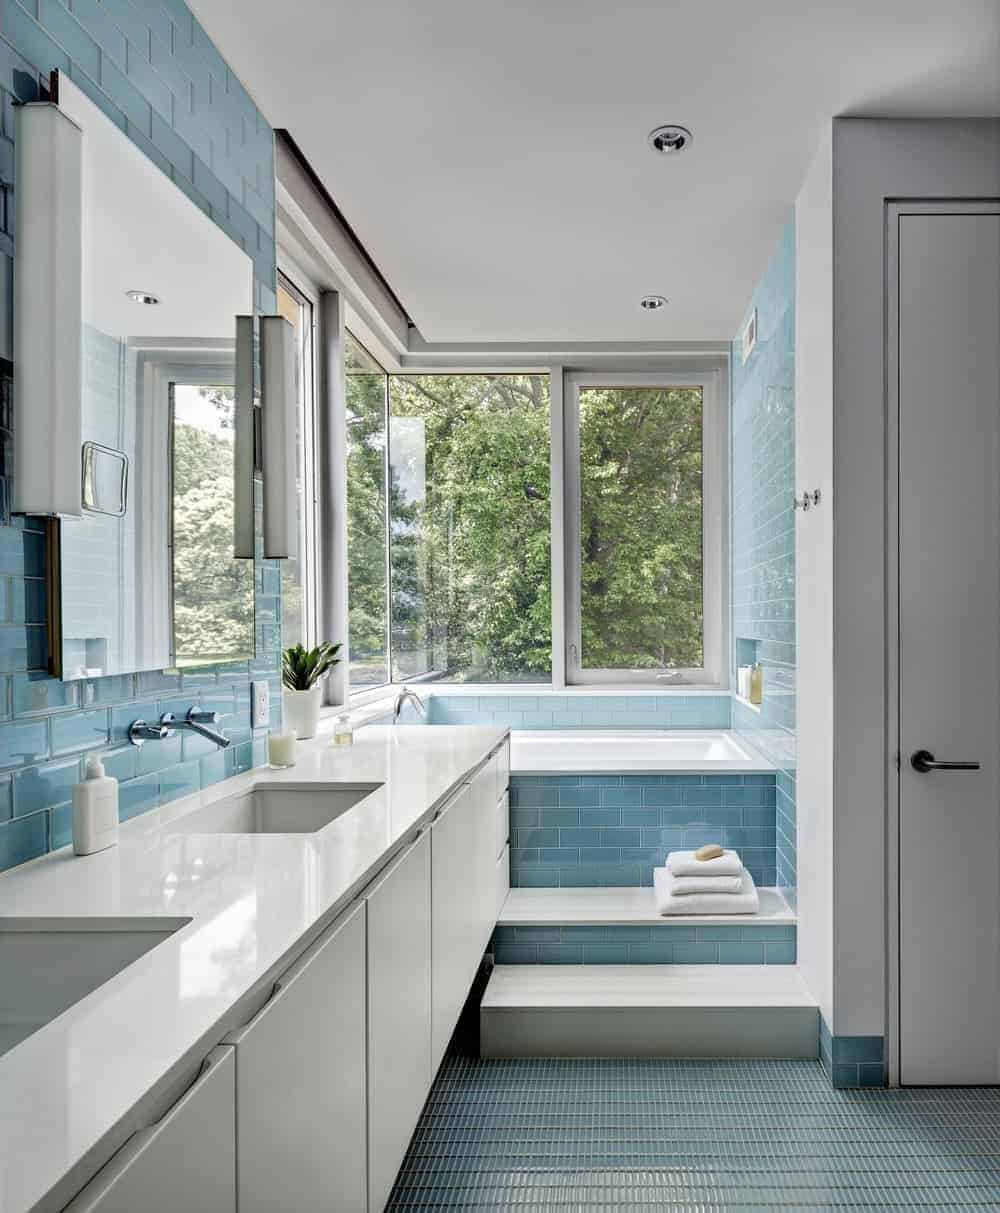 Light and airy bathroom with sleek white sink vanity and a deep soaking tub by the glazed window bringing plenty of natural light in.